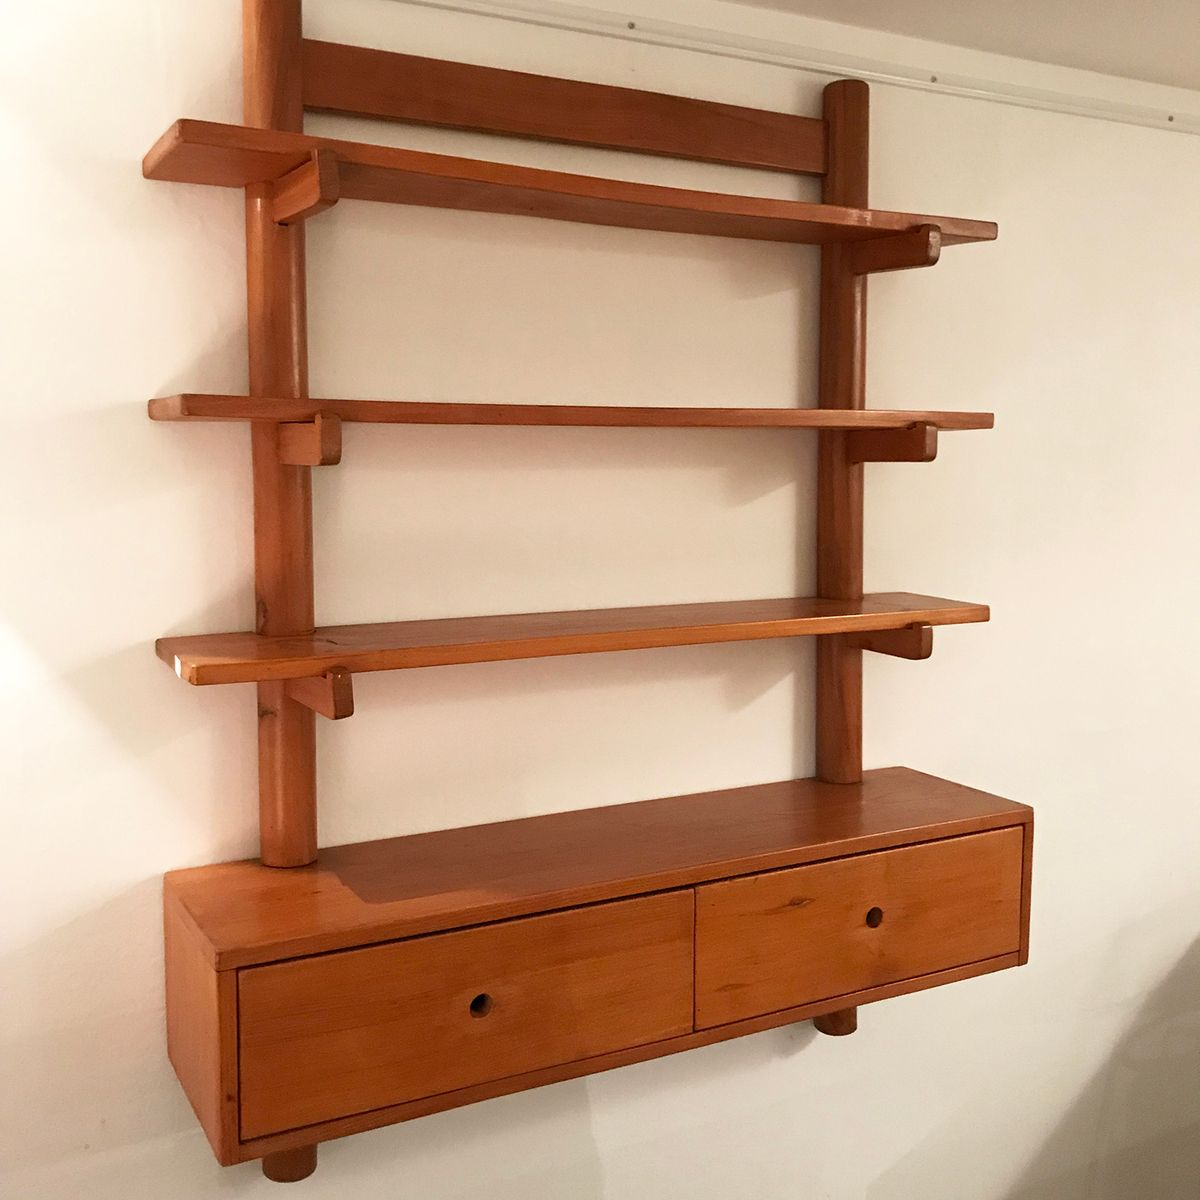 new the high cool ideas idolza bedroom shelves for wall hanging bookcase a of design